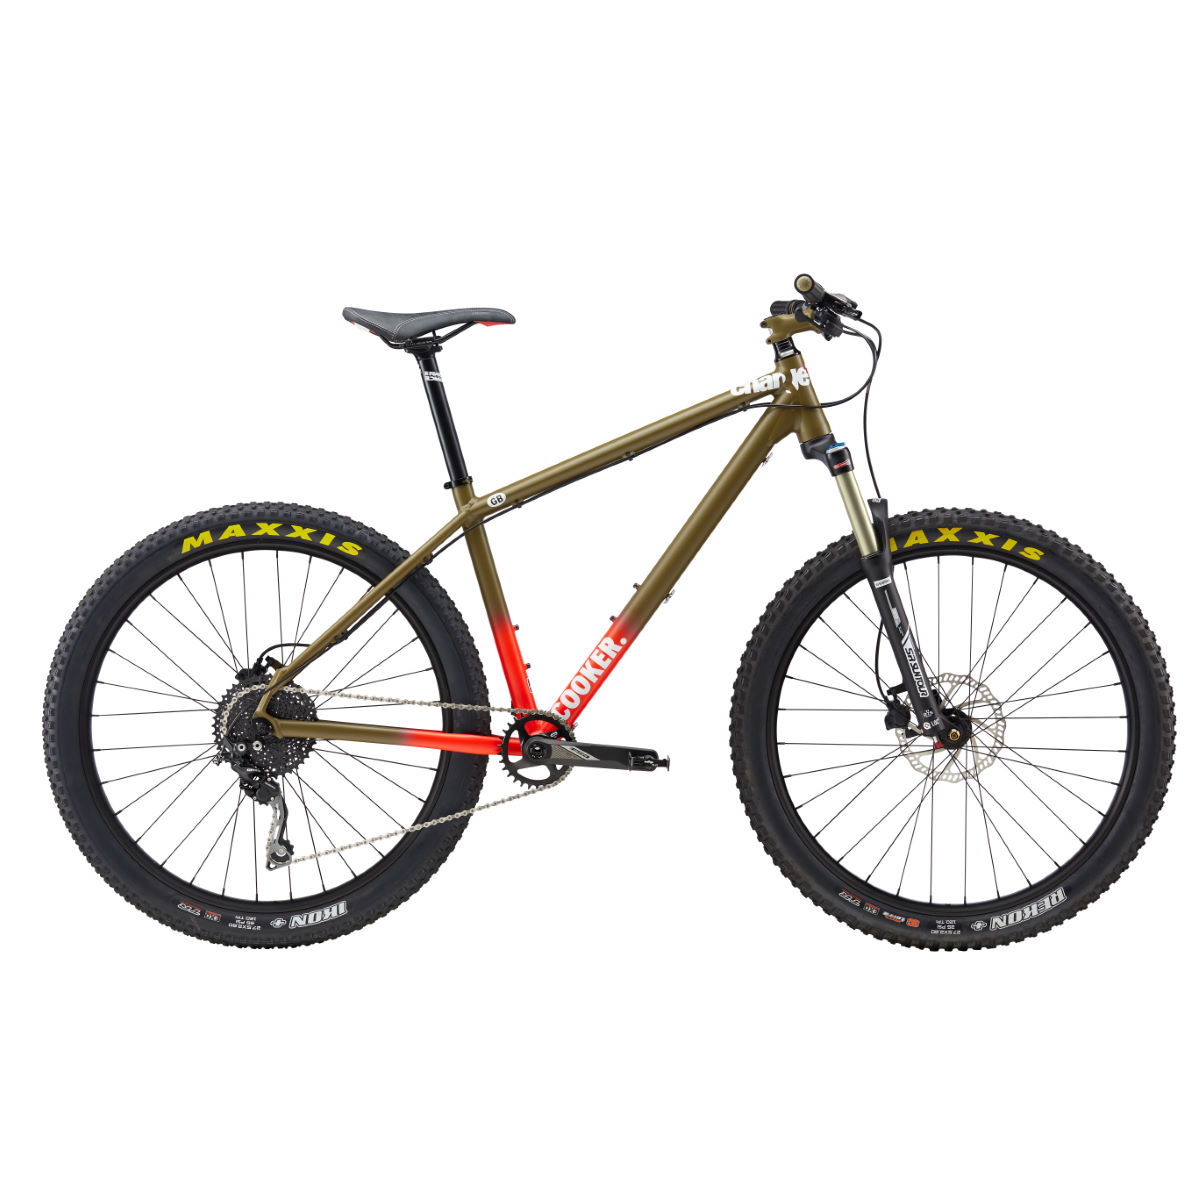 VTT Charge Cooker 2 (SLX, 2017) - MD Stock Bike Vert